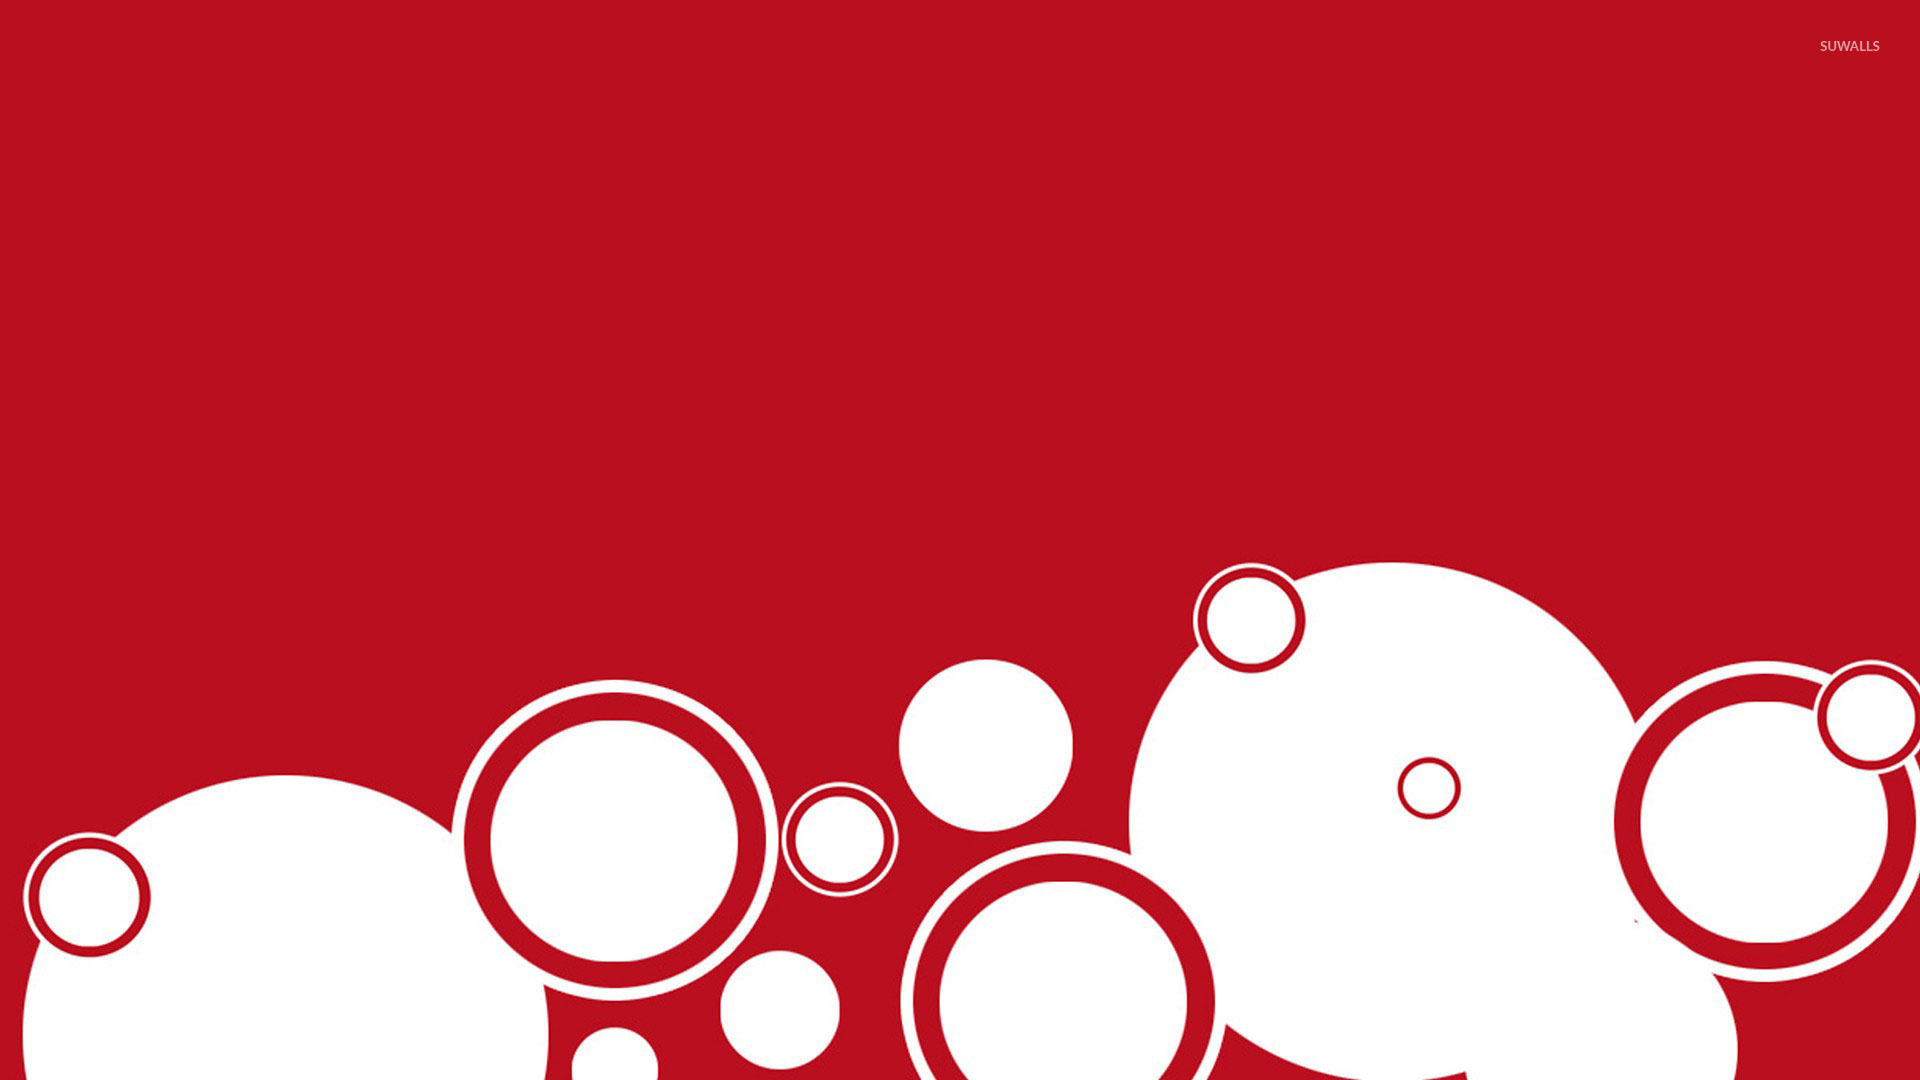 White Circles On Red Wallpaper Vector Wallpapers 24022